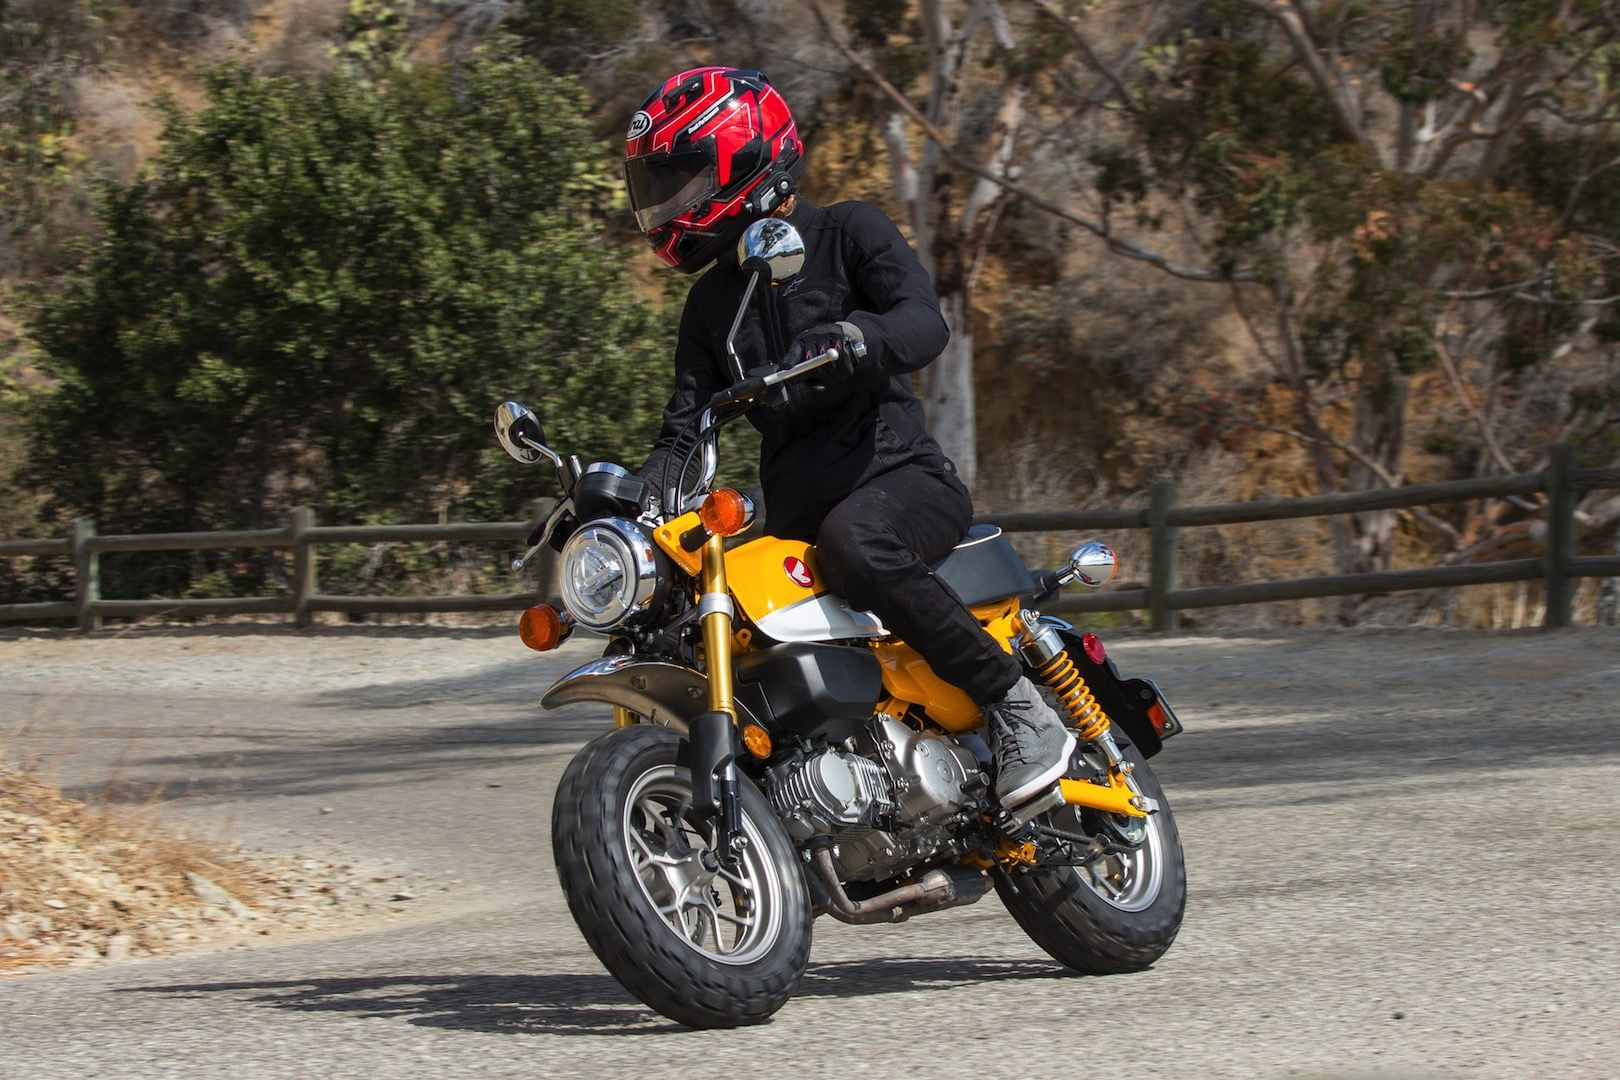 2019 Honda Monkey Review 14 Fast Facts In 2020 Honda Monkey Pictures Honda Grom